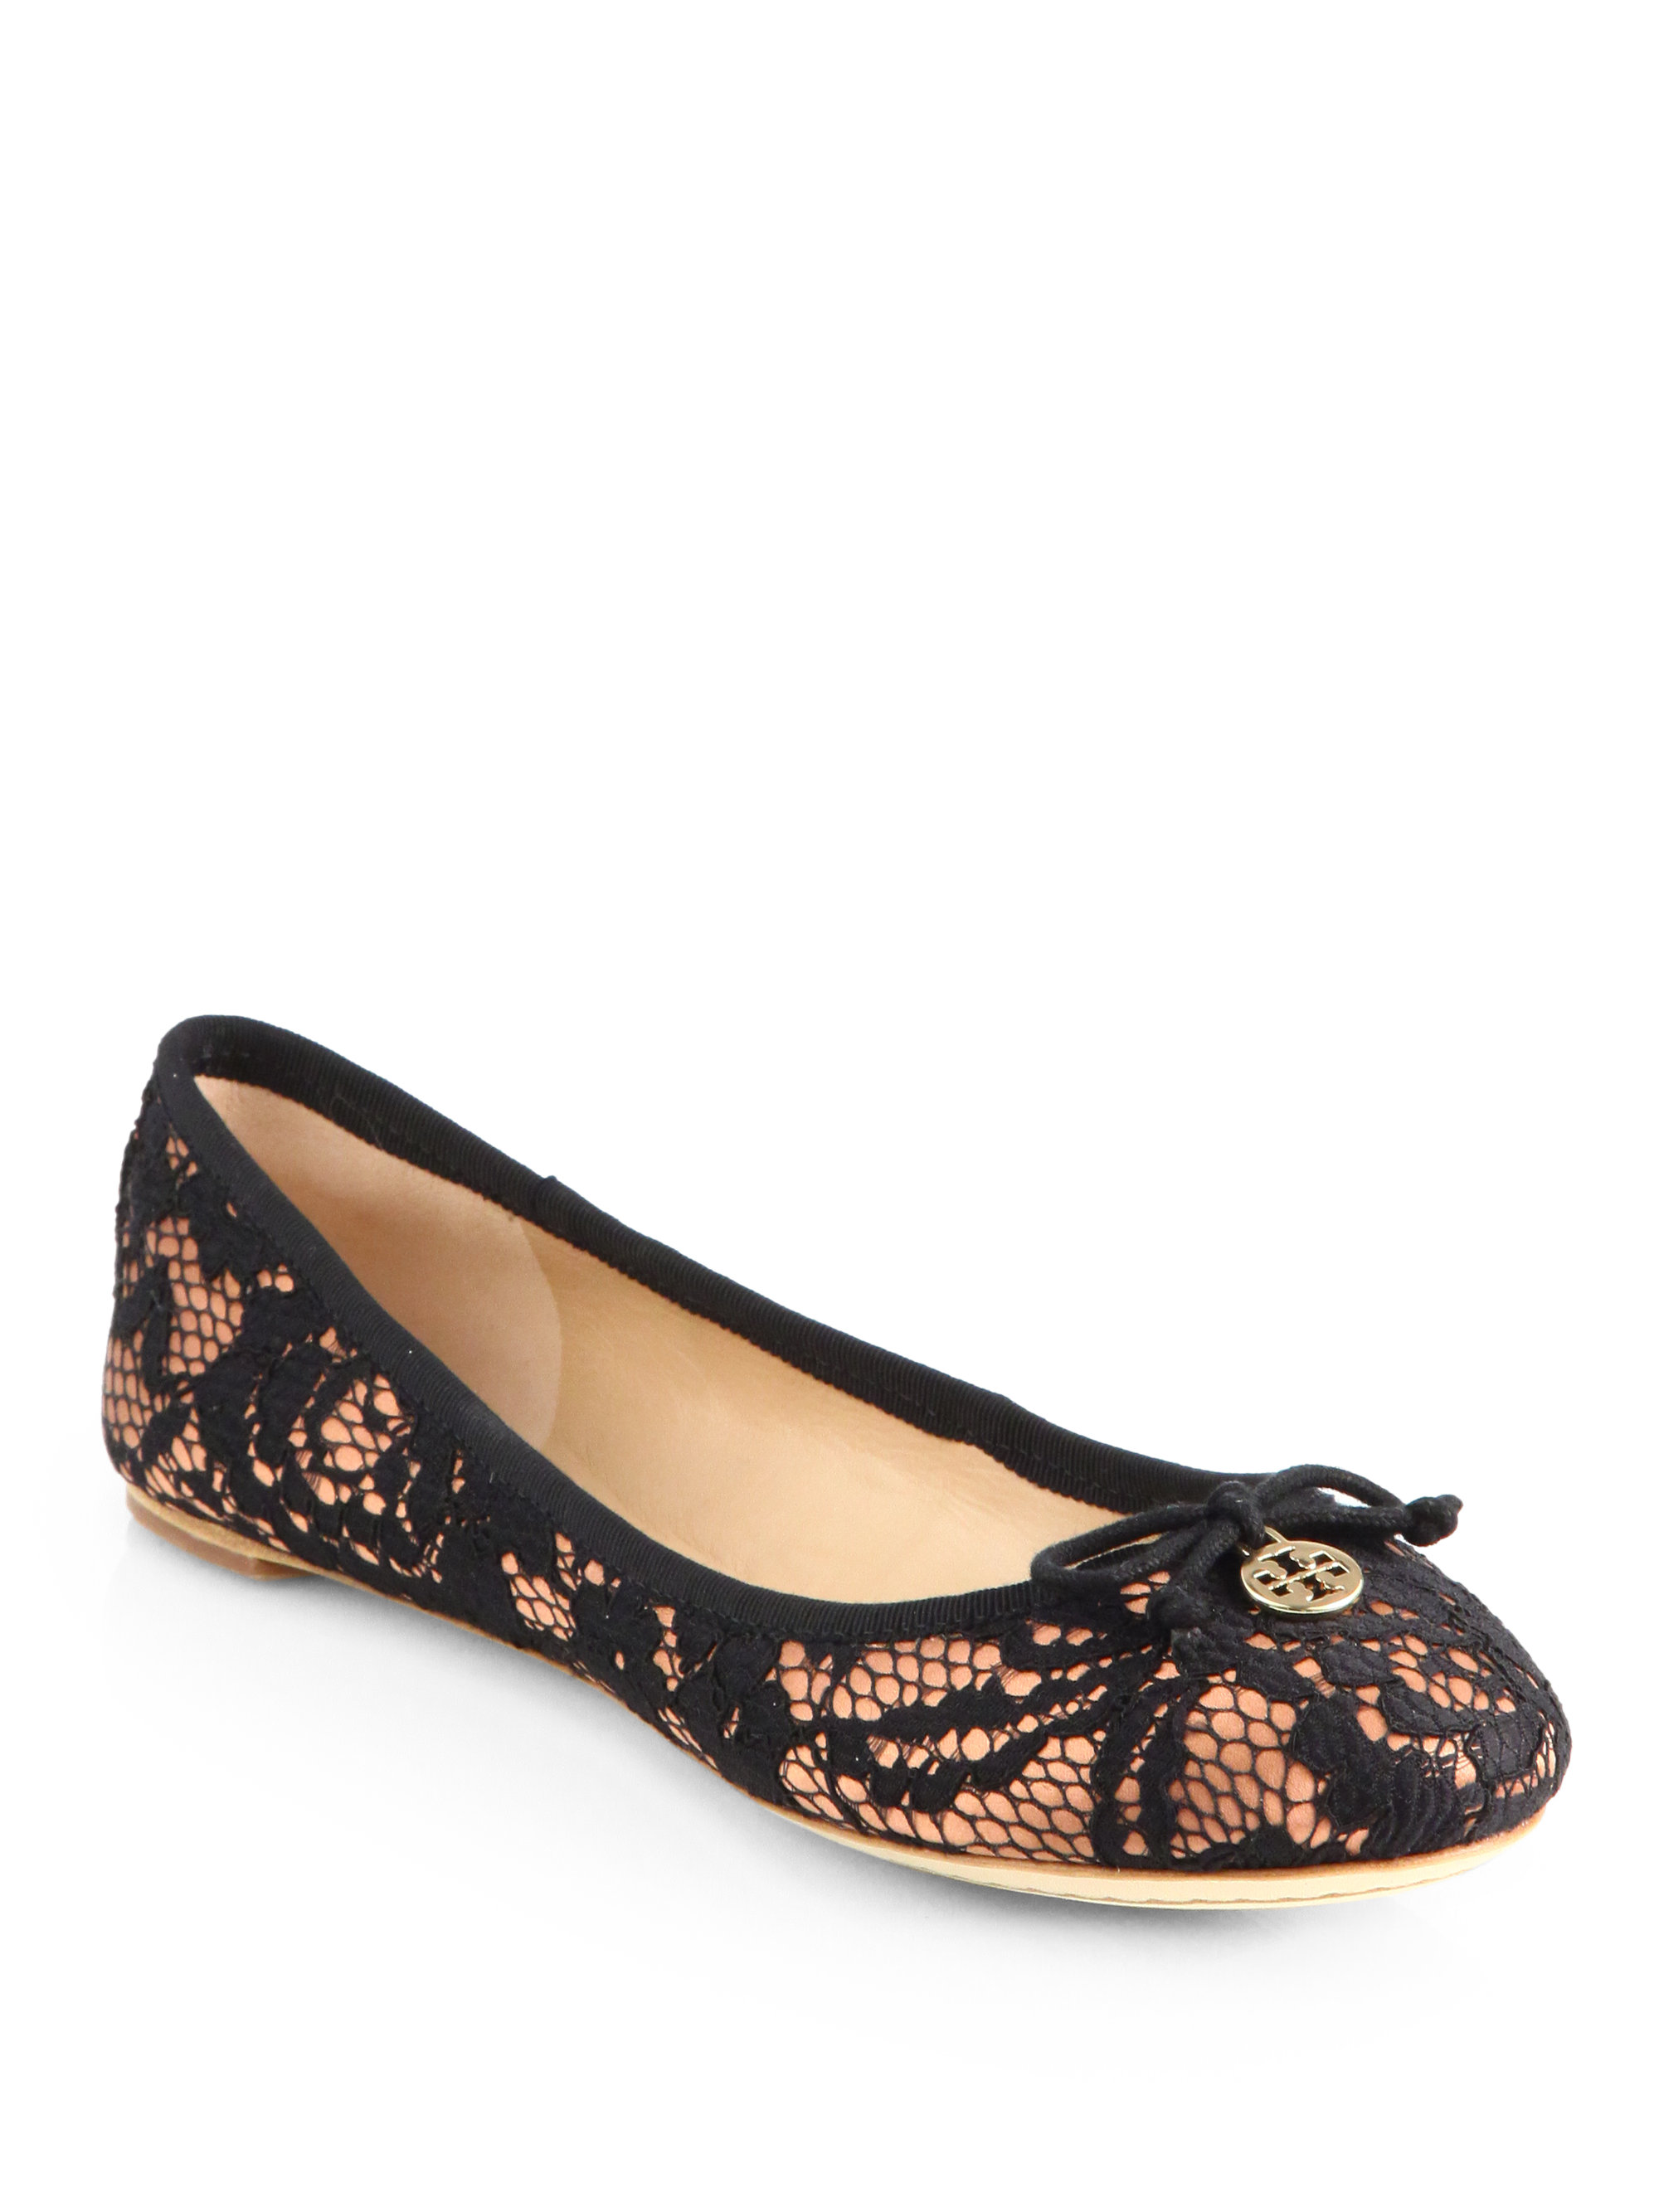 Tory Burch Chelsea Lace Covered Silk Ballet Flats In Black